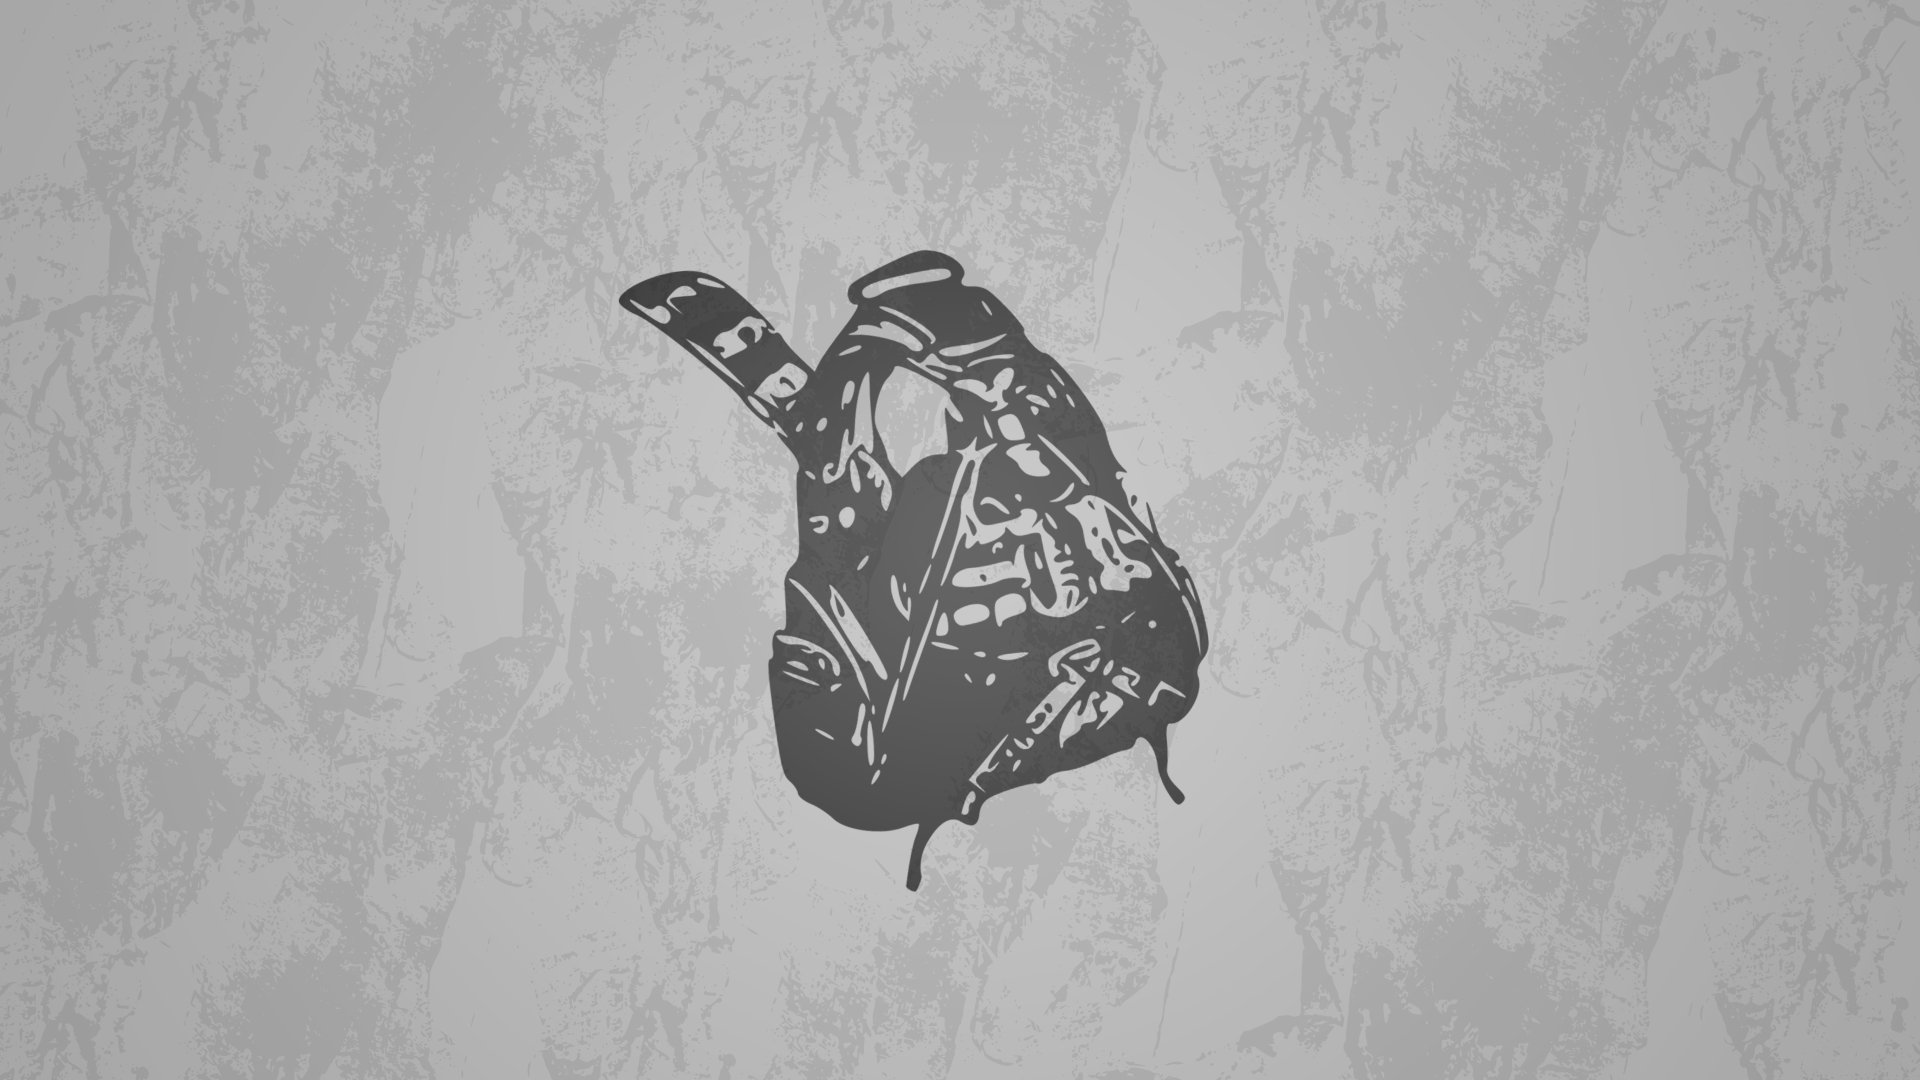 Video Game - Dead by Daylight  Unique bag (Dead by Daylight) Minimalist Video Game Wallpaper